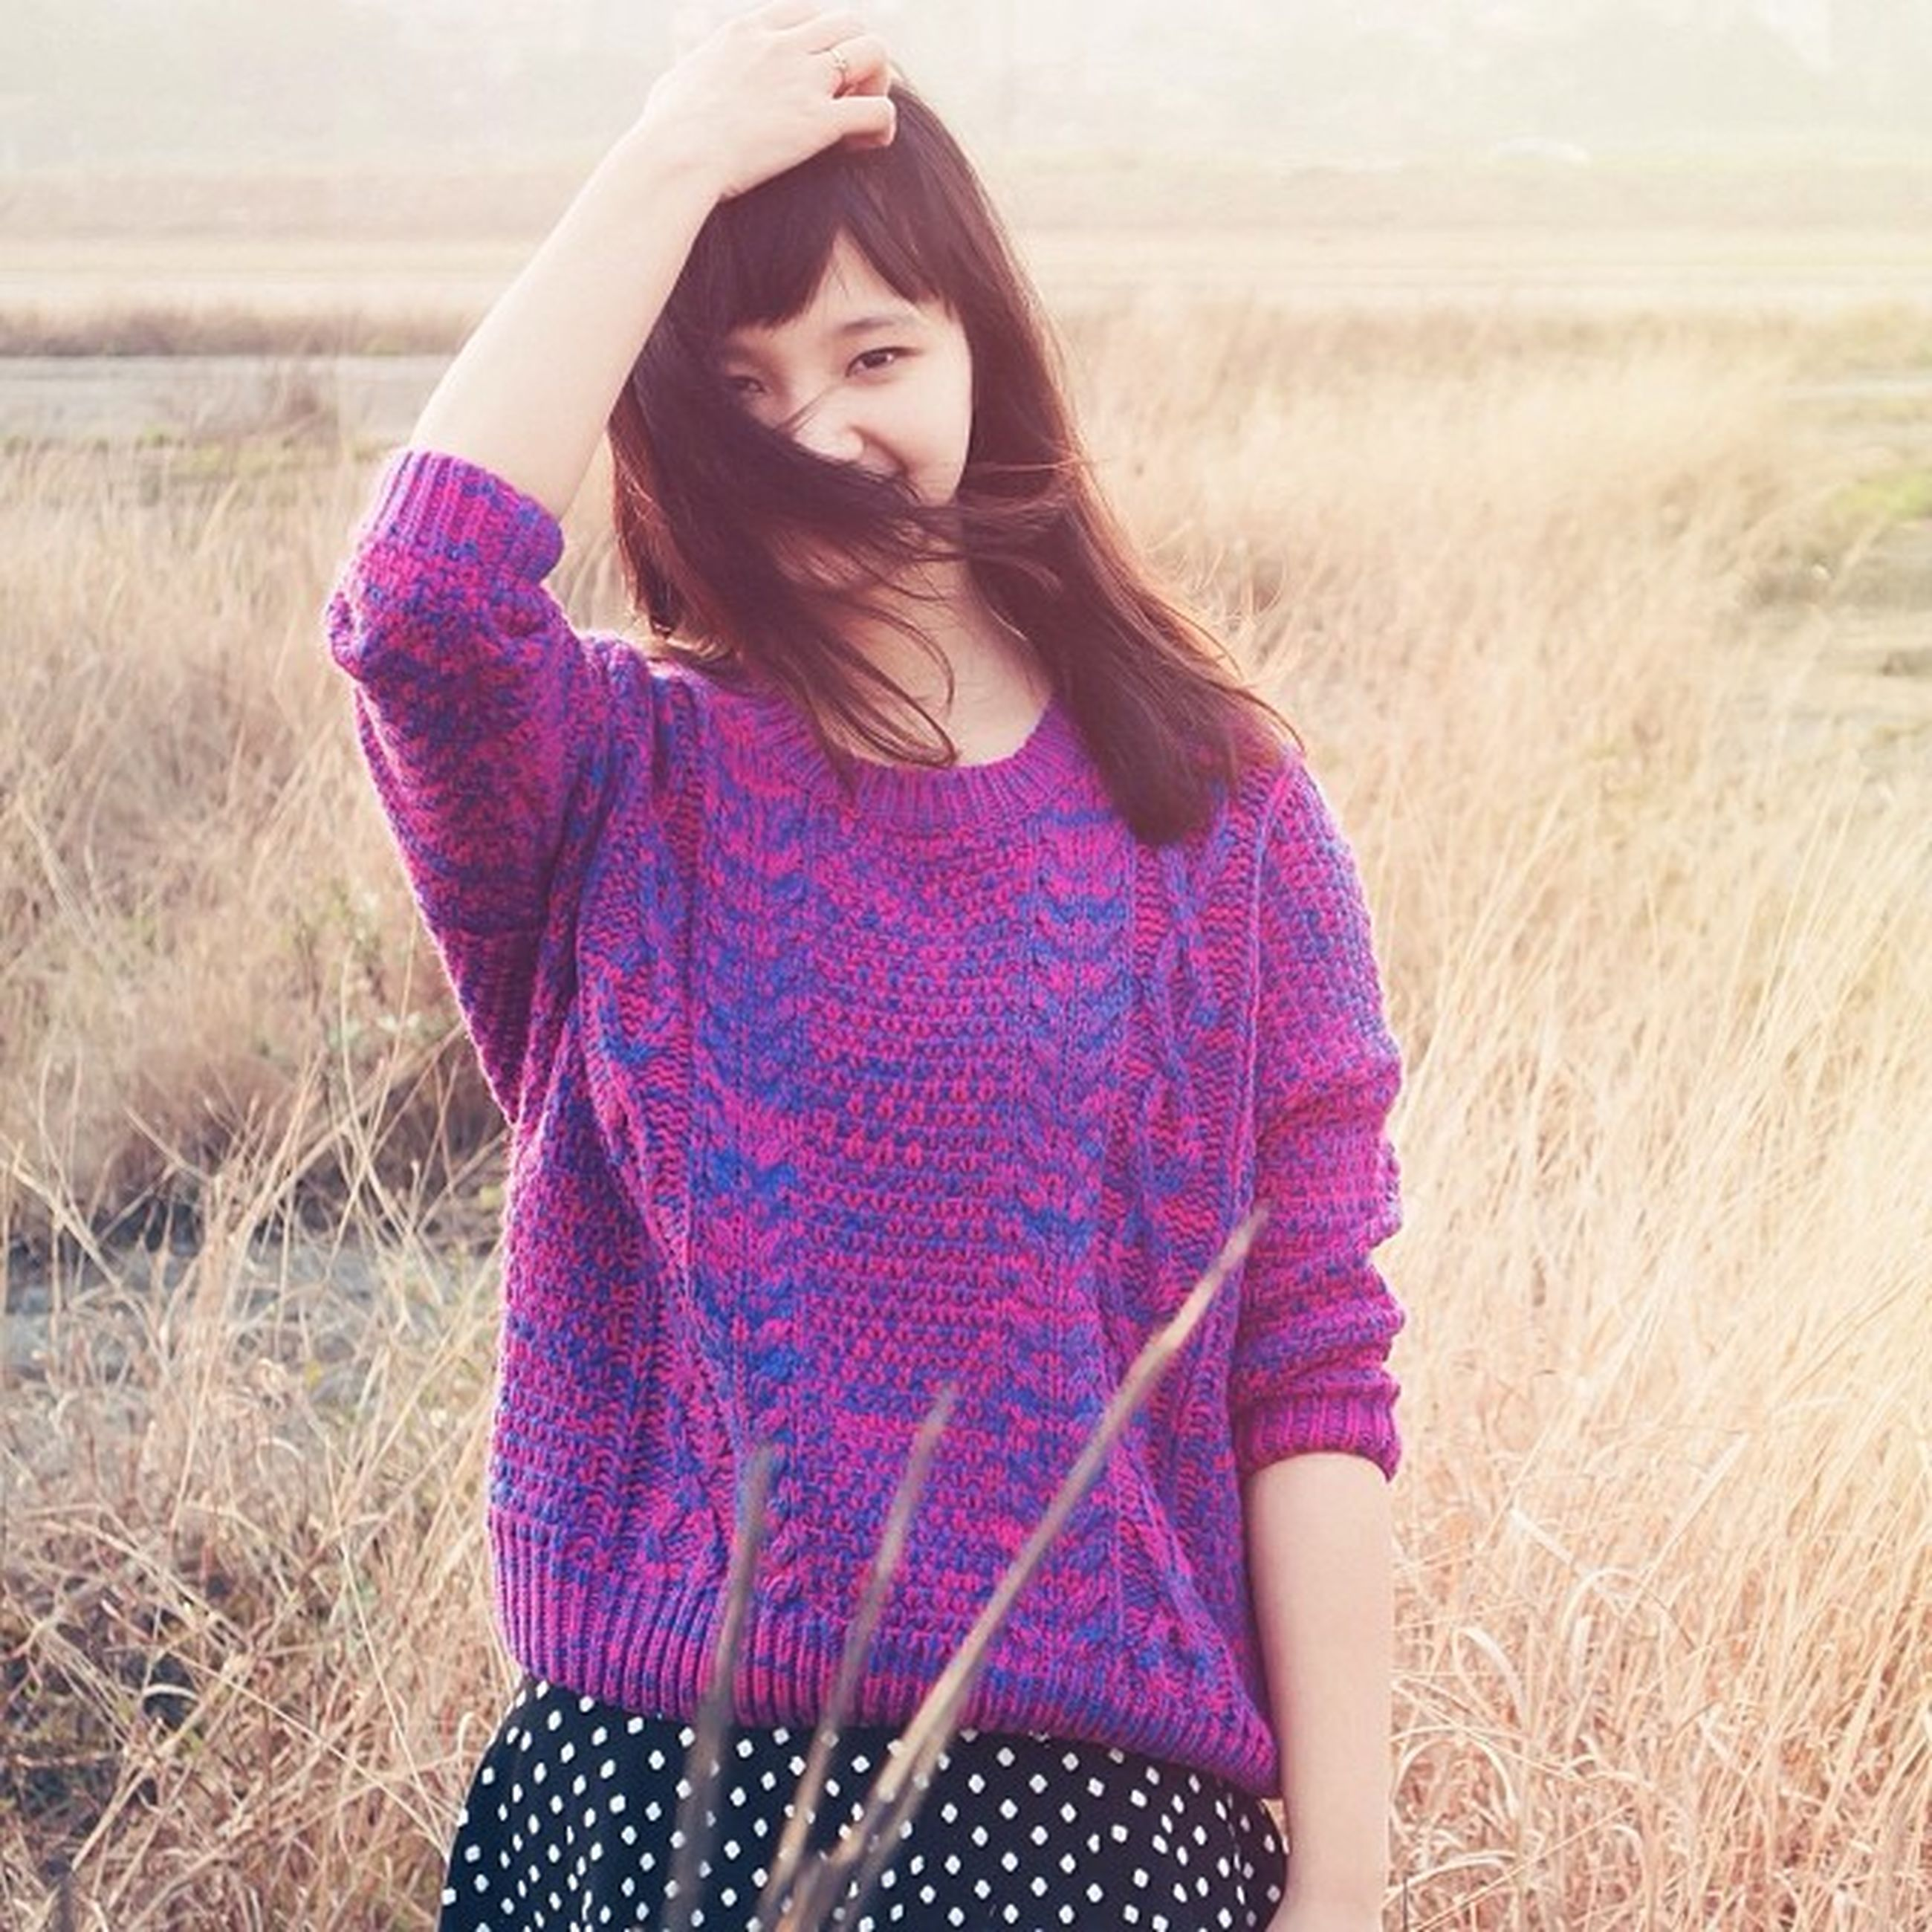 young adult, young women, lifestyles, person, casual clothing, front view, leisure activity, long hair, standing, three quarter length, portrait, looking at camera, field, smiling, focus on foreground, fashion, beauty